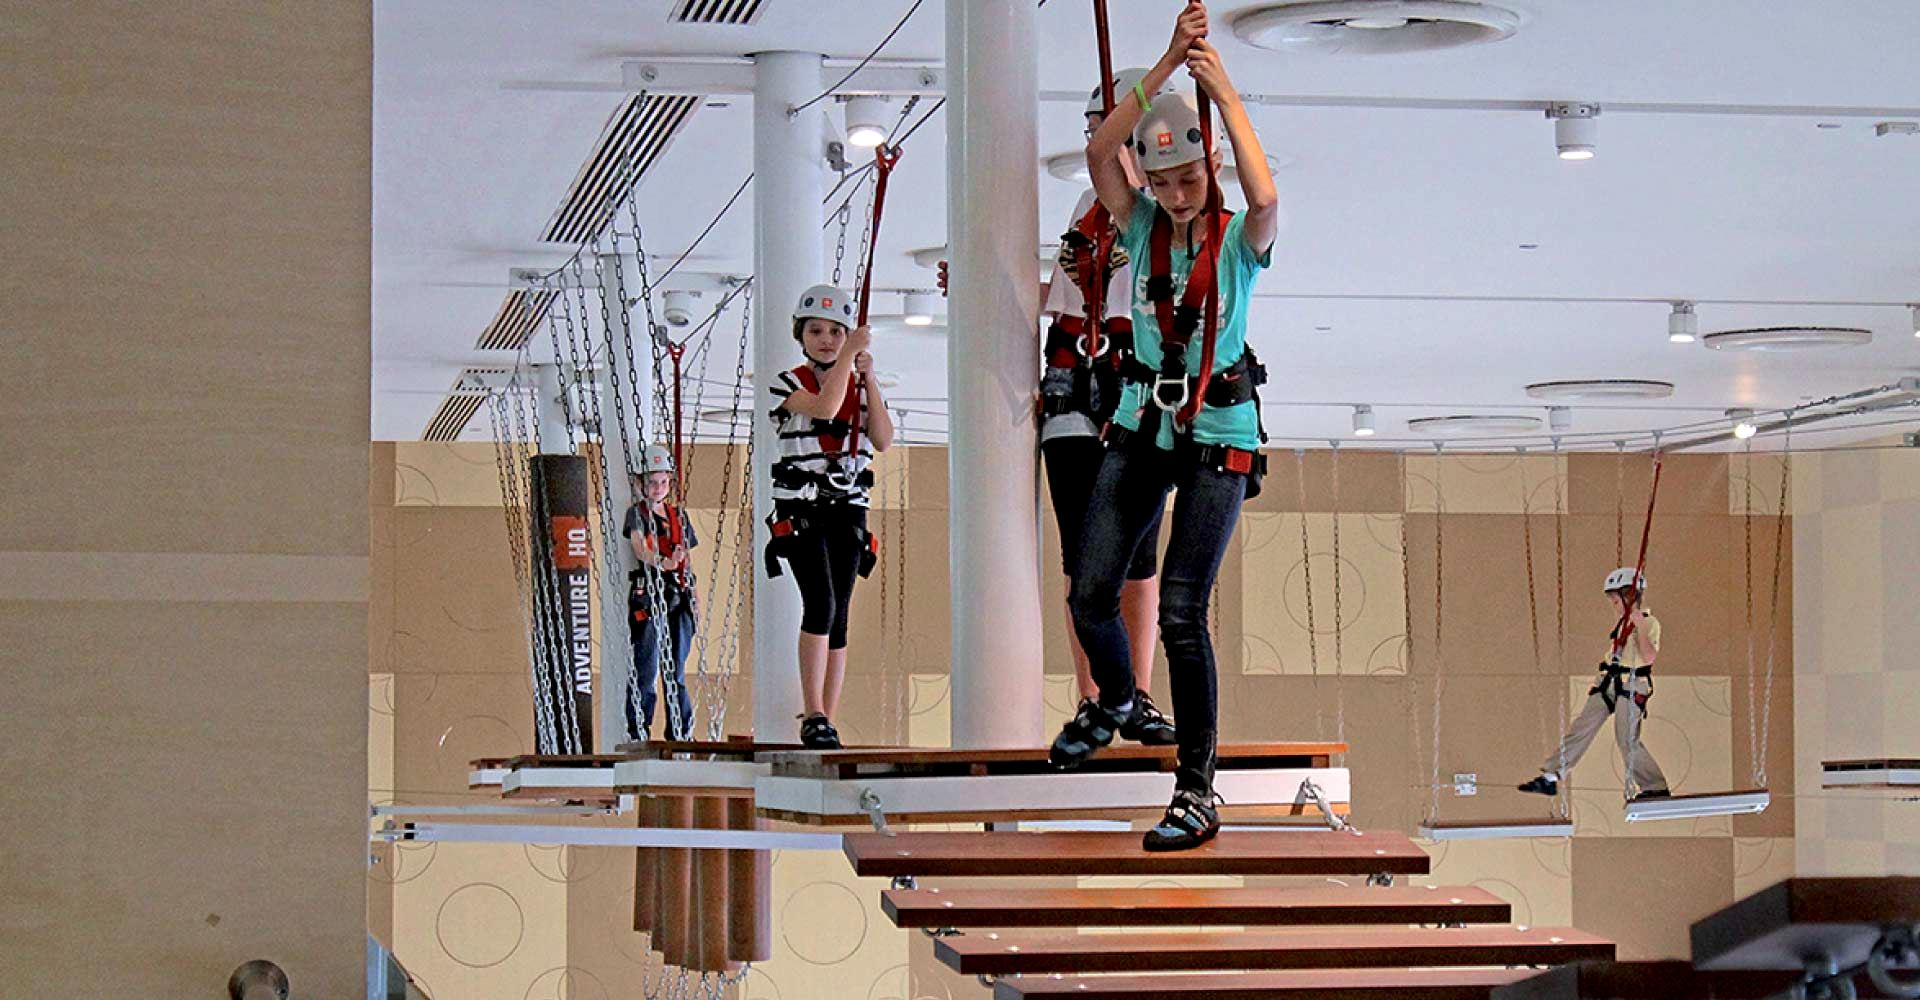 Indoor Ropecourse Setup in India